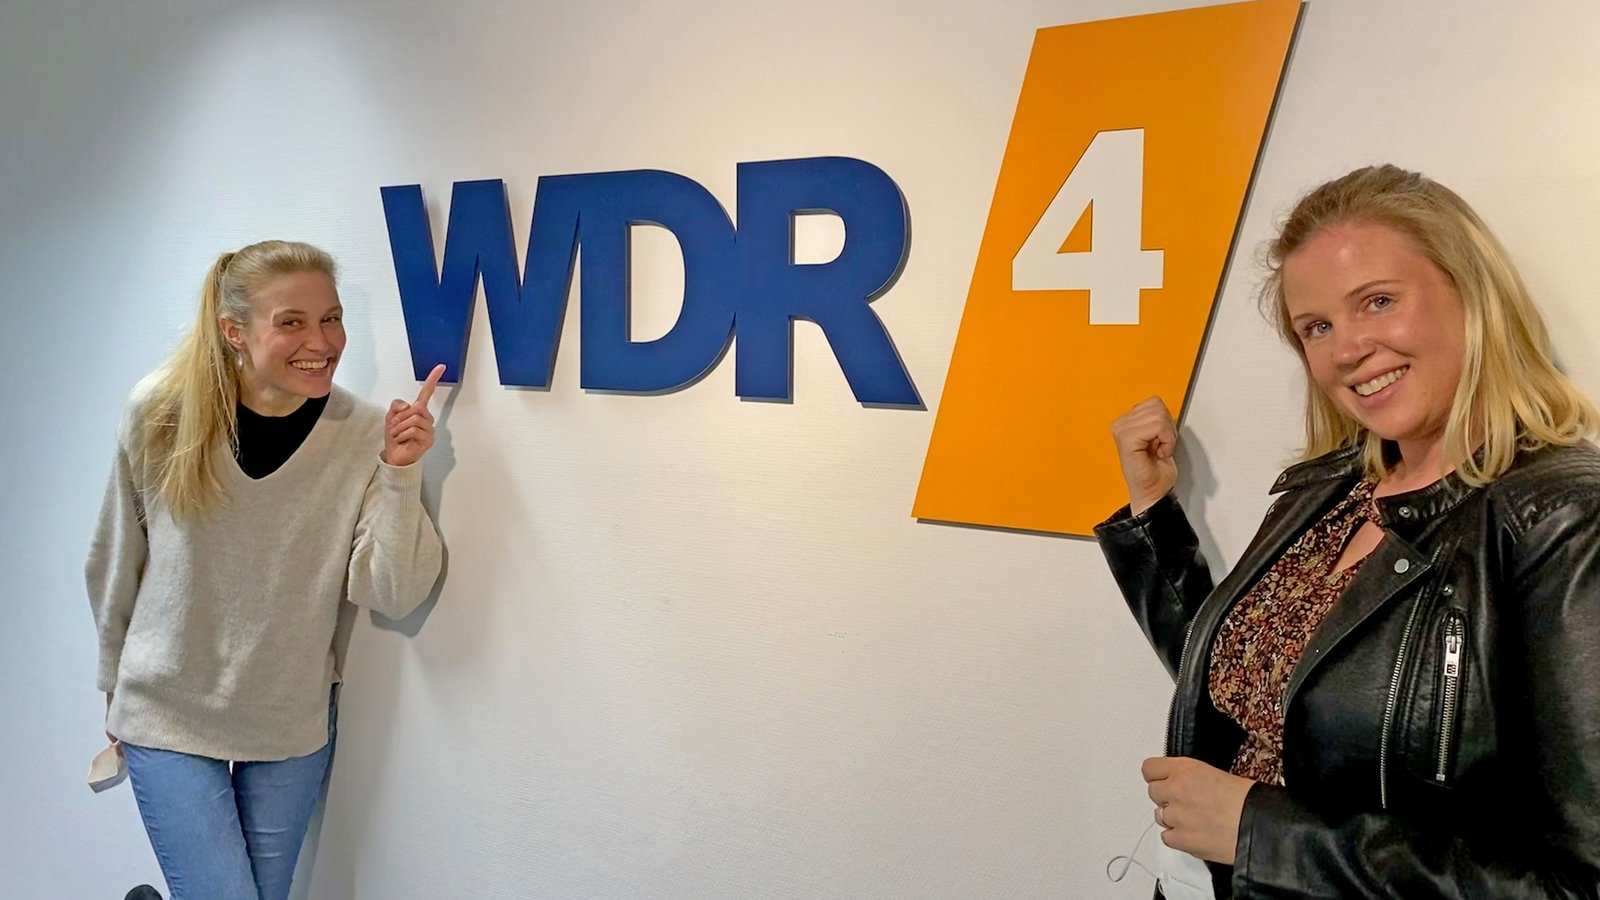 Wdr 4 Playliste